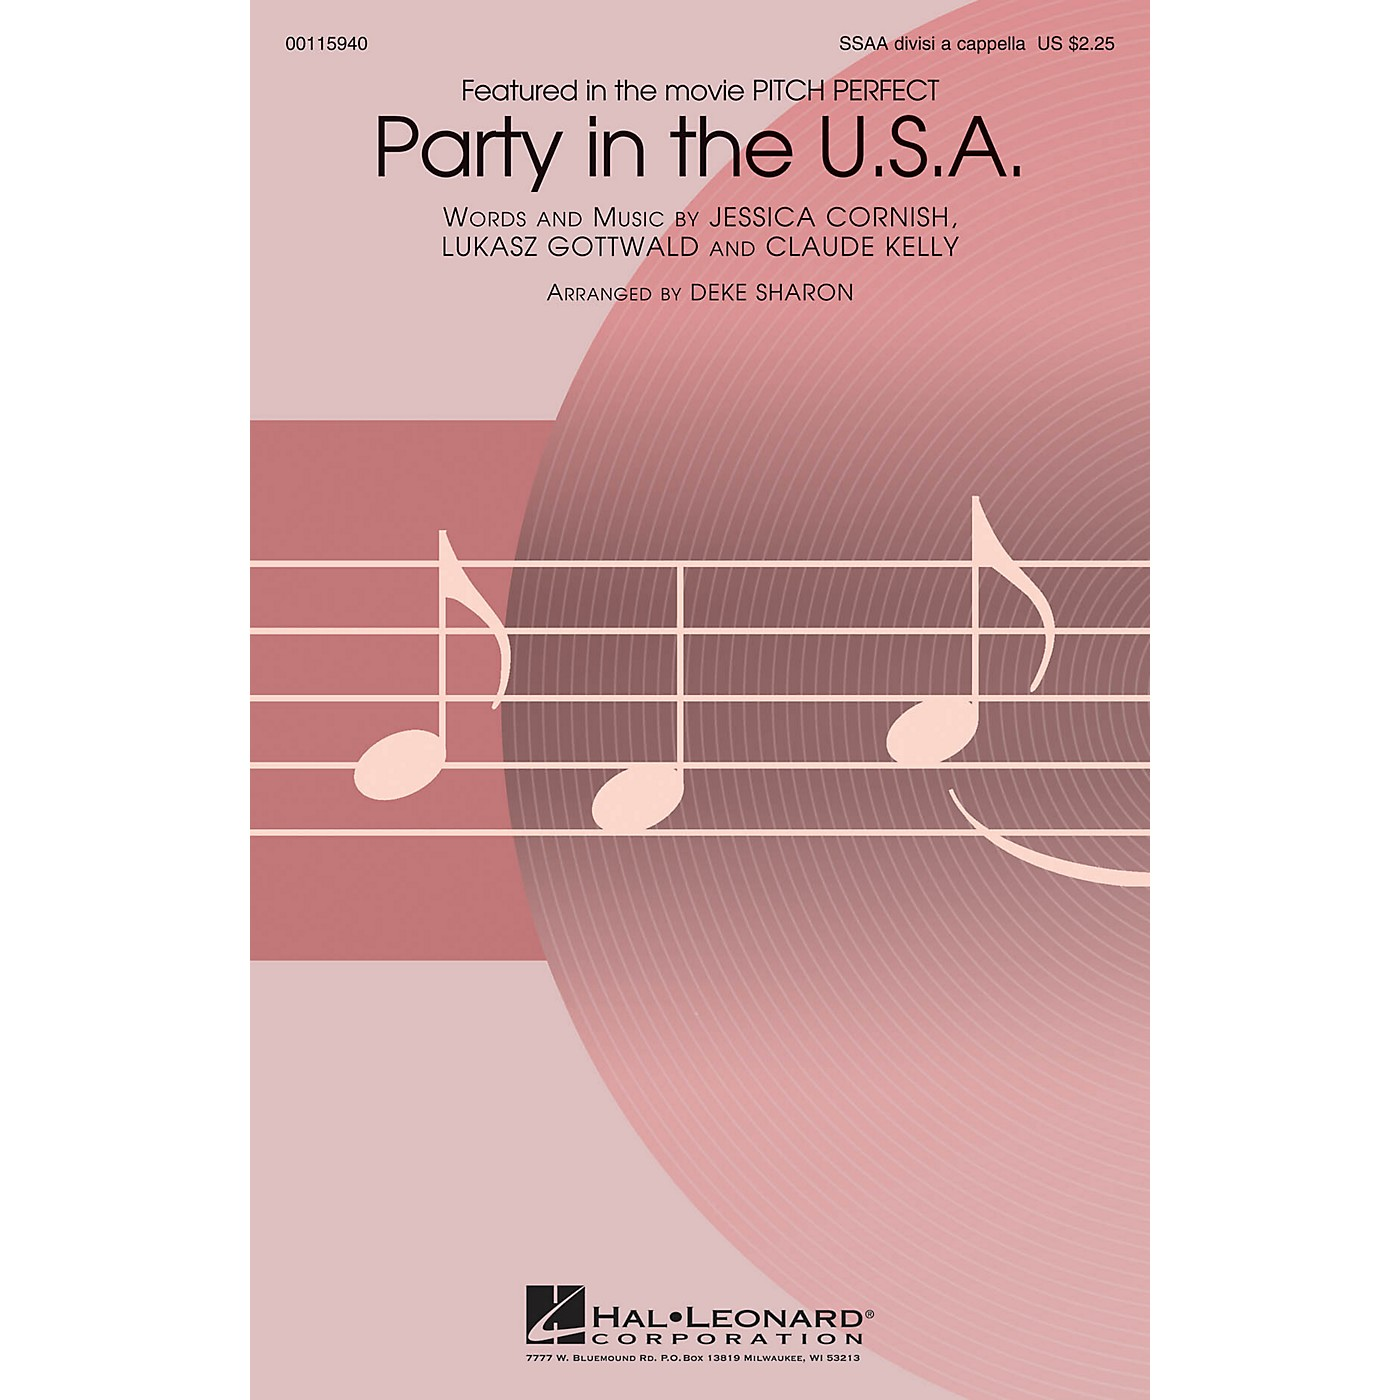 Hal Leonard Party in the U.S.A. (from Pitch Perfect) SSAA Div A Cappella by Miley Cyrus arranged by Deke Sharon thumbnail